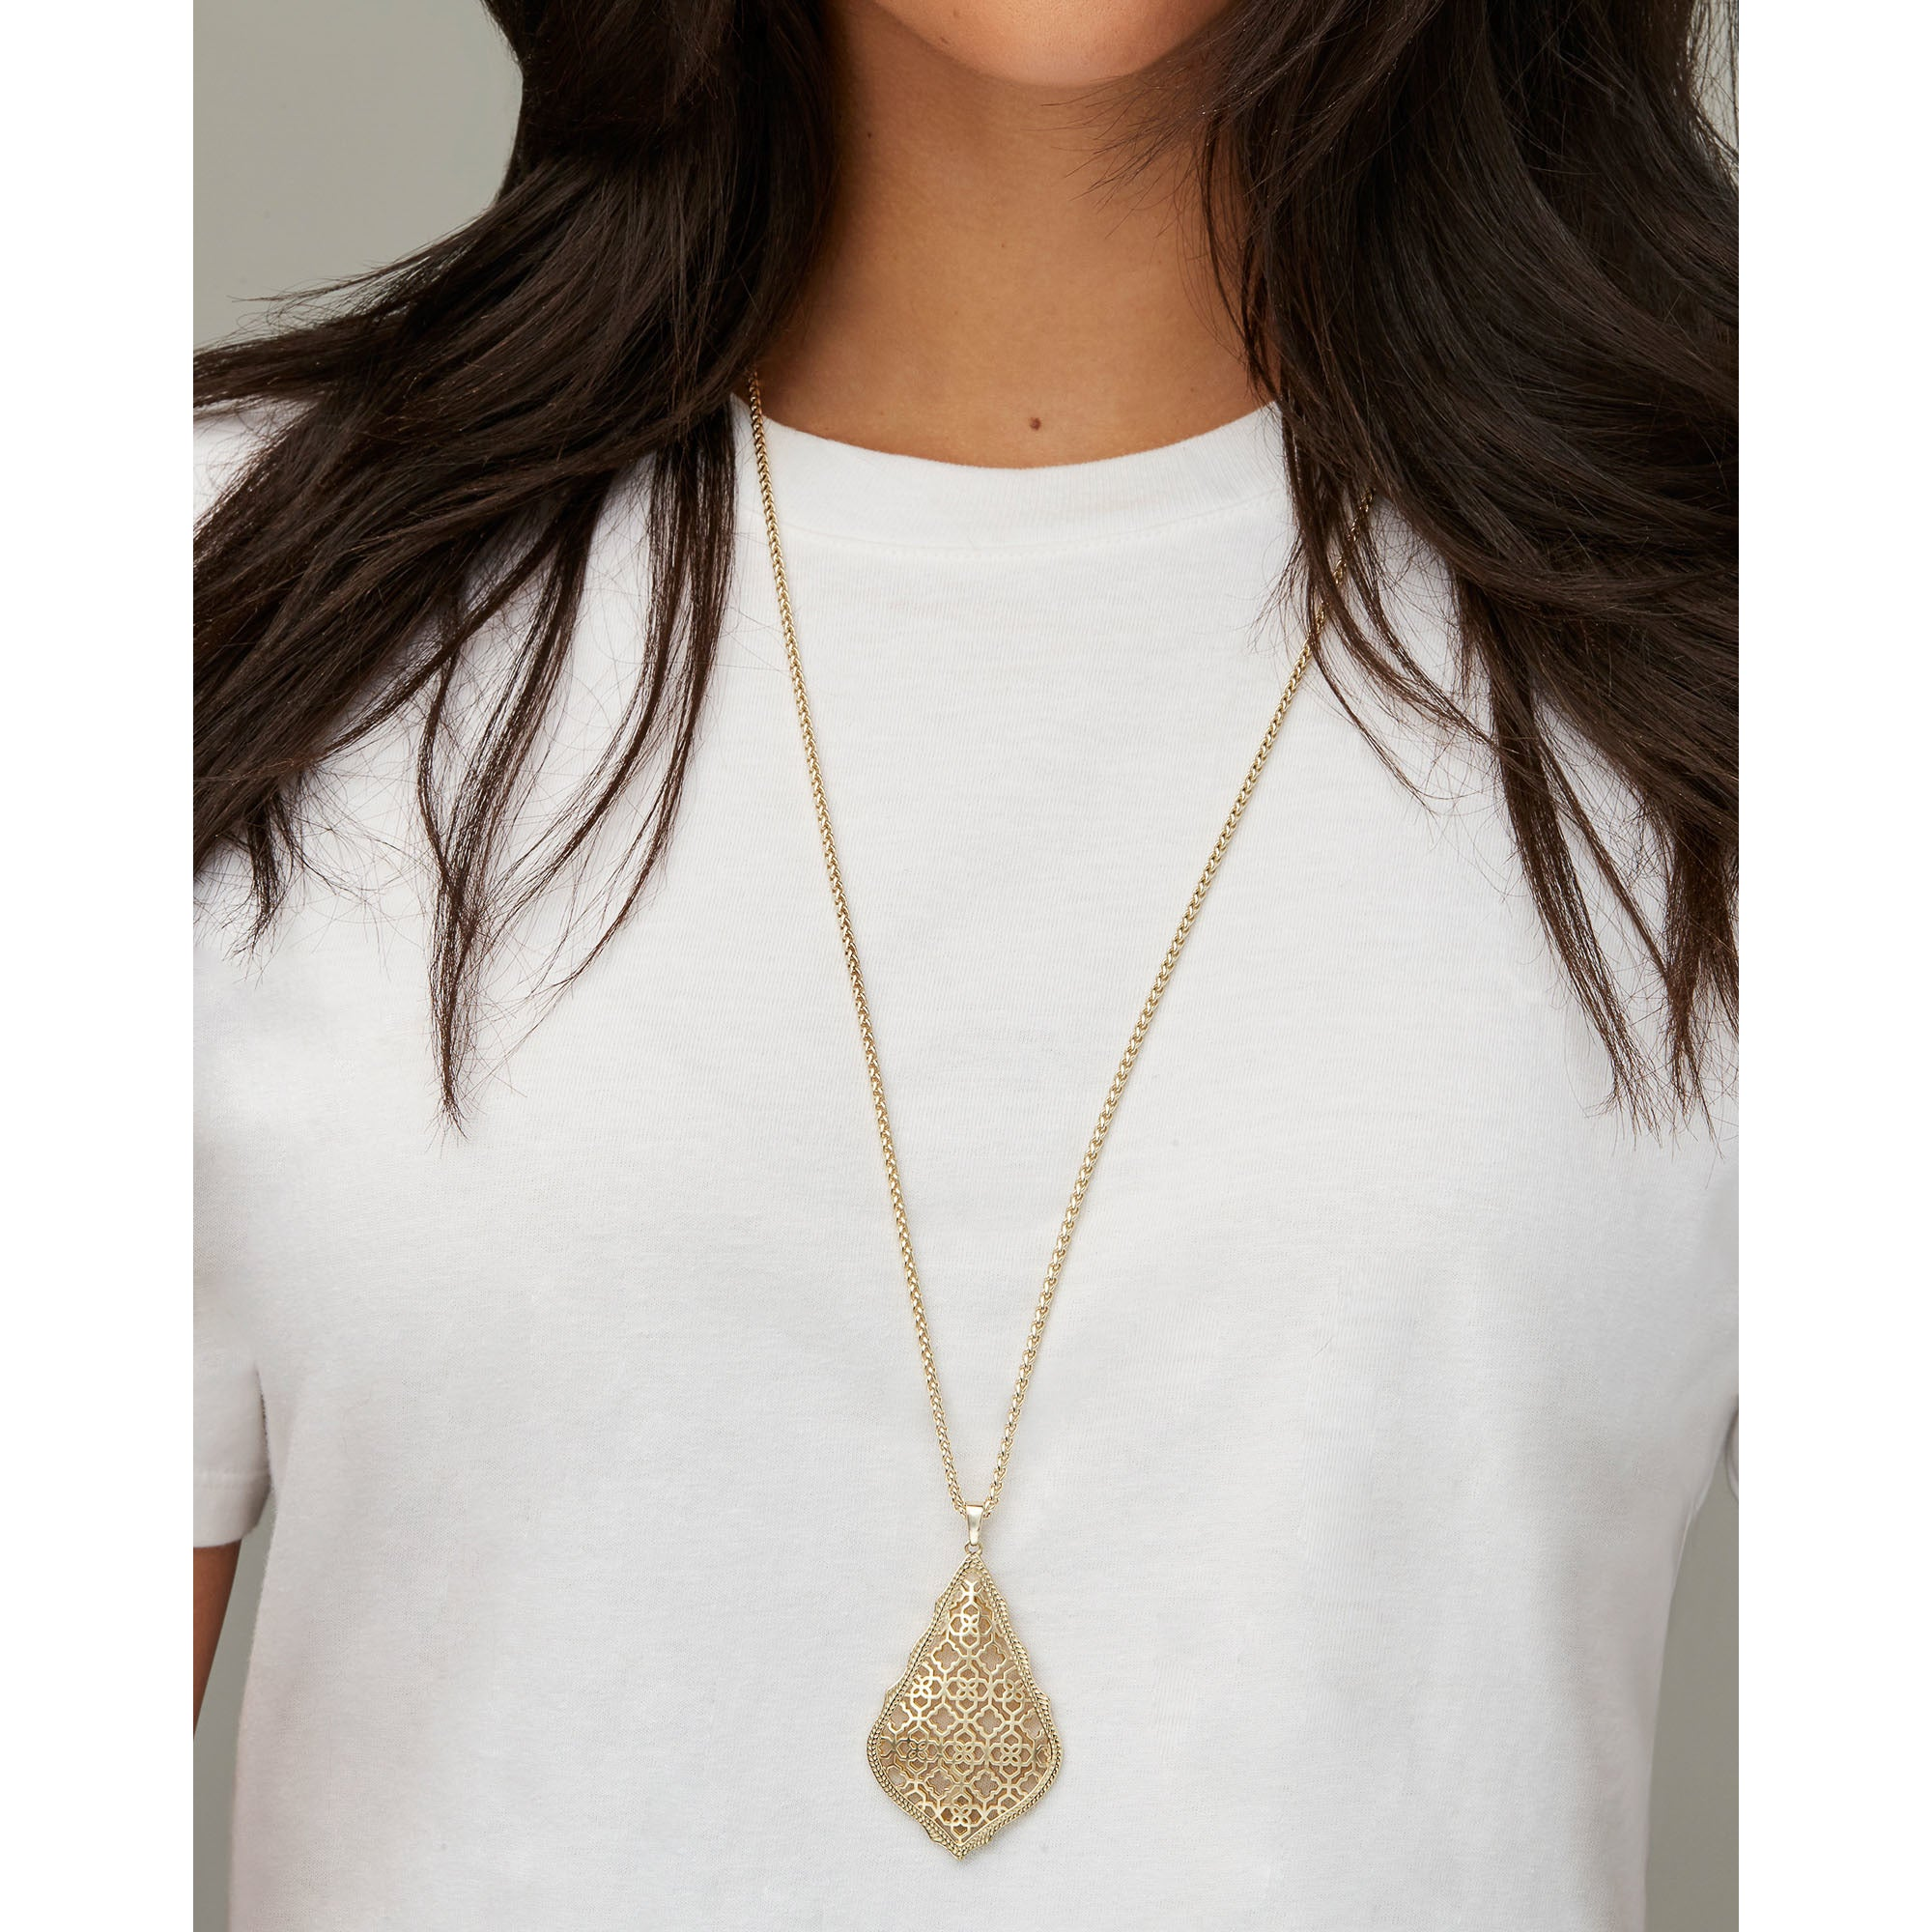 Kendra Scott -  Aiden GOLD Long Pendant Necklace ON MODEL